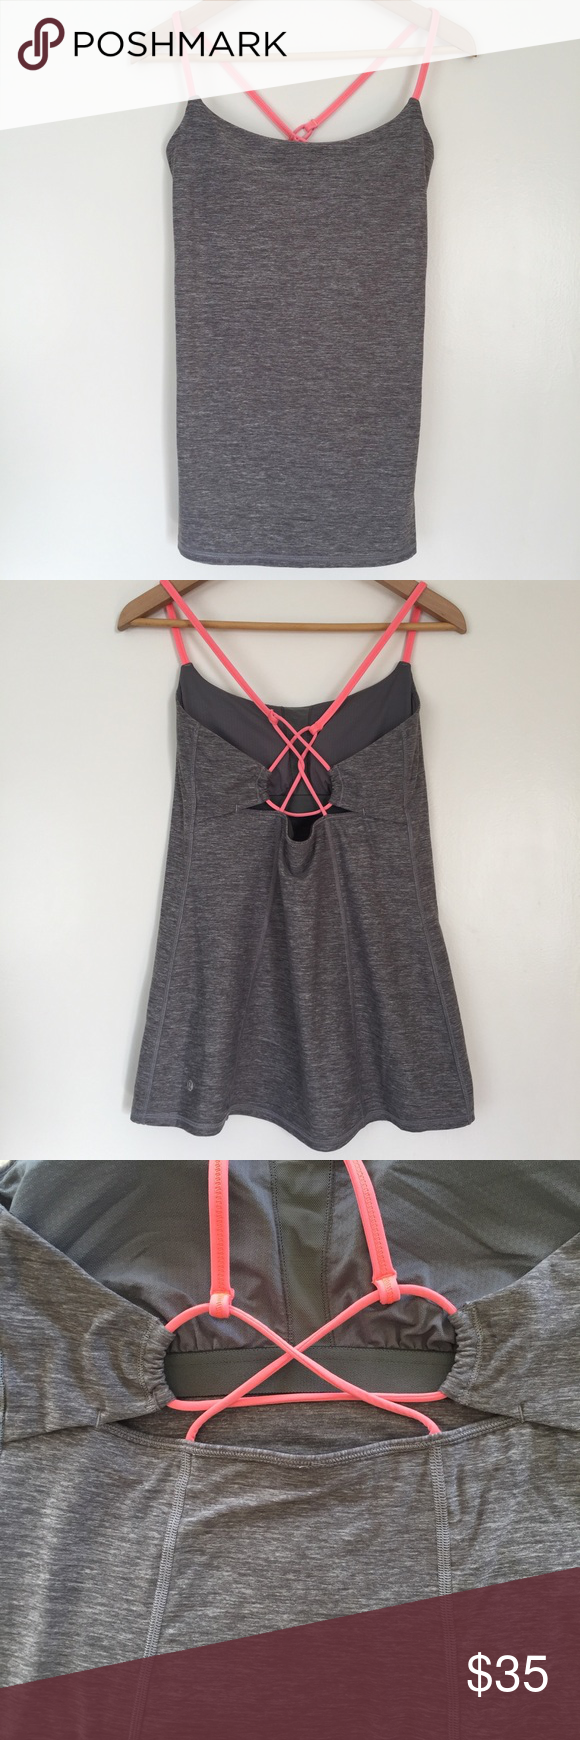 Lululemon Dancing Warrior Tank Top Pre-loved, Women's yoga strappy open back tank top, with light support and removable cups, luon fabric, Heathered Slate/Grapefruit. Please feel free to ask questions. No trades. lululemon athletica Tops Tank Tops